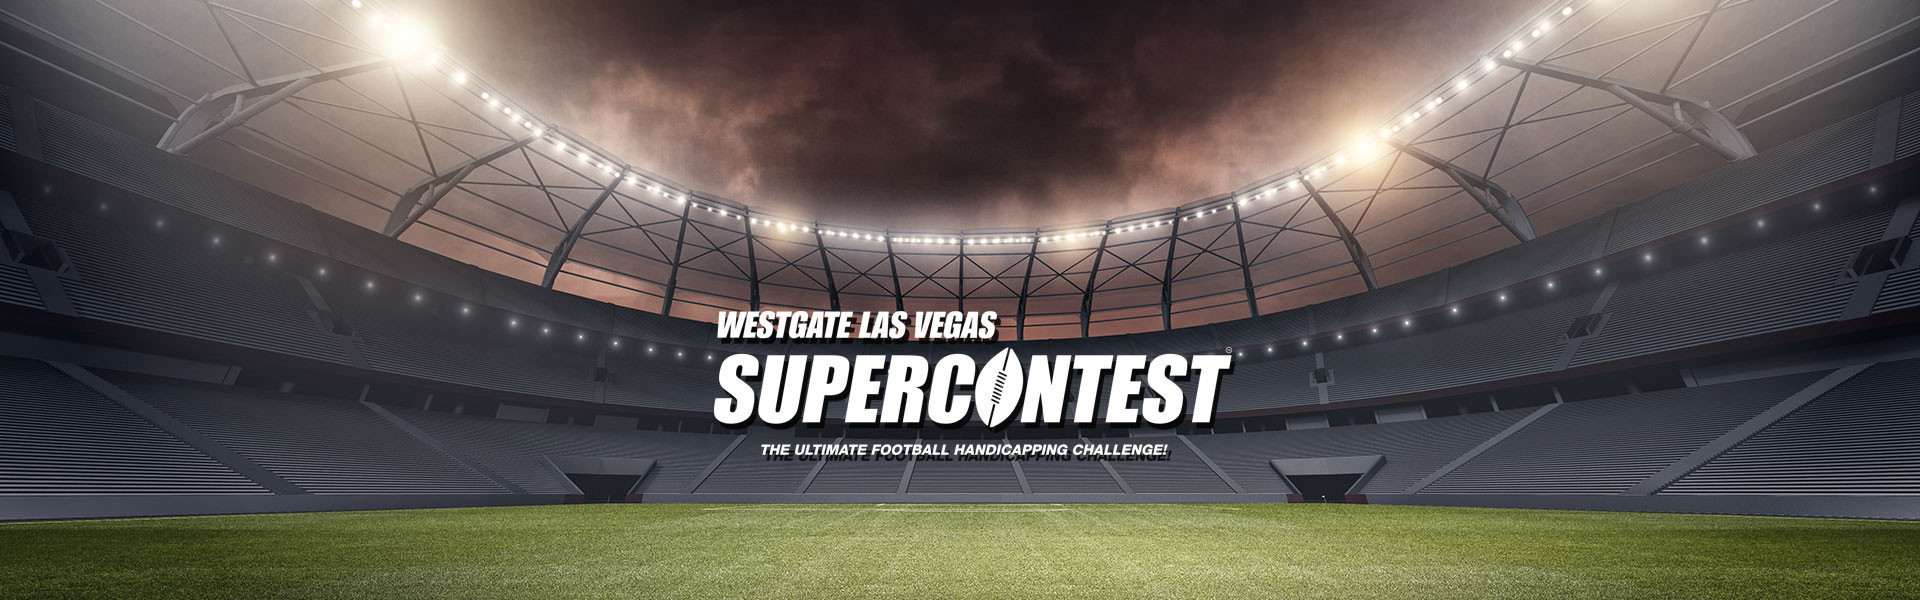 SuperContest at our Las Vegas Hotel and Casino | Westgate Las Vegas SuperContest